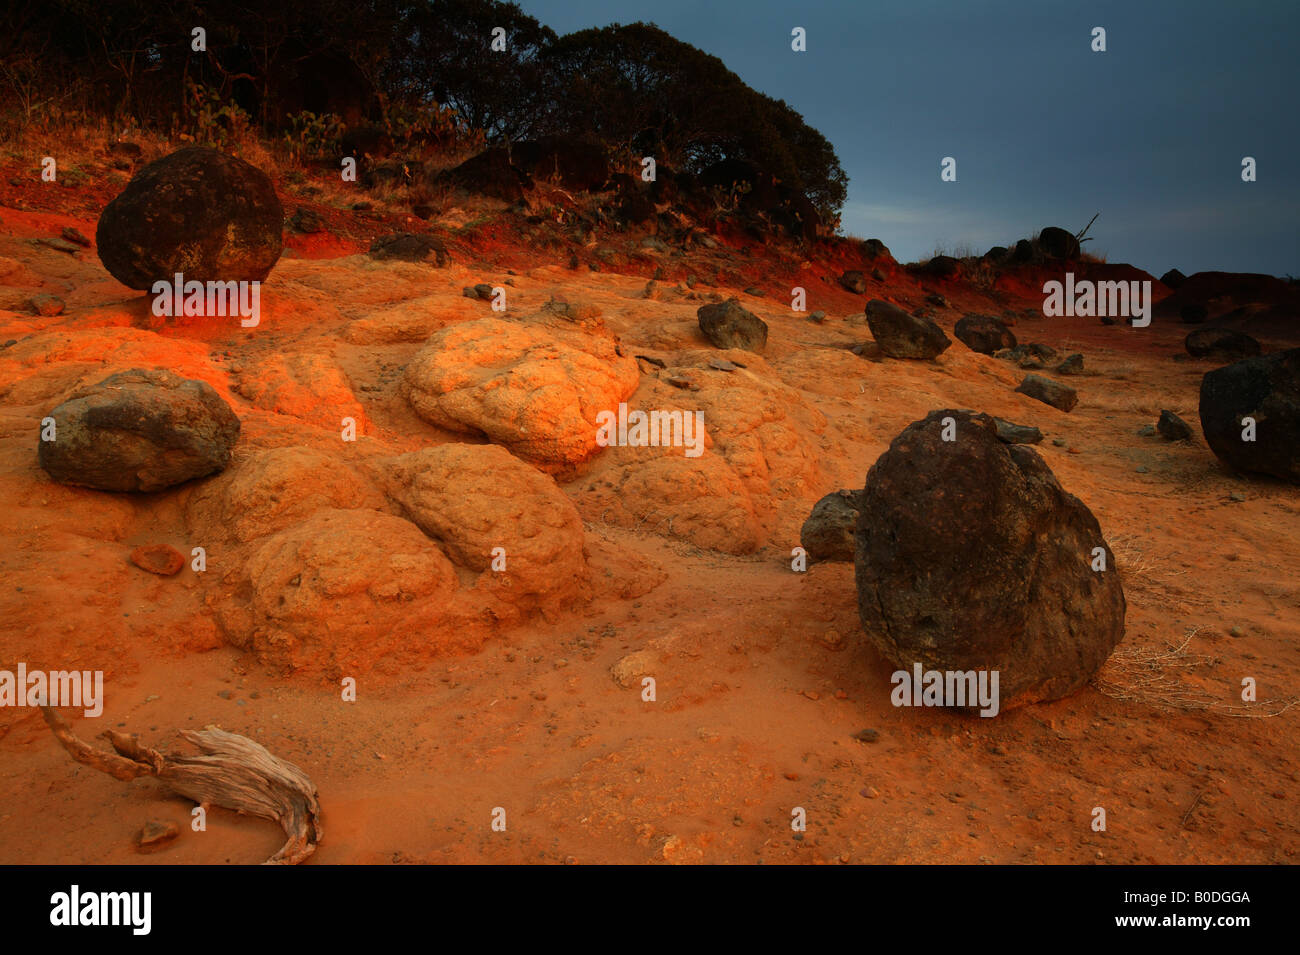 Volcanic rocks, and eroded soil in Sarigua national park, Herrera province, Republic of Panama. - Stock Image